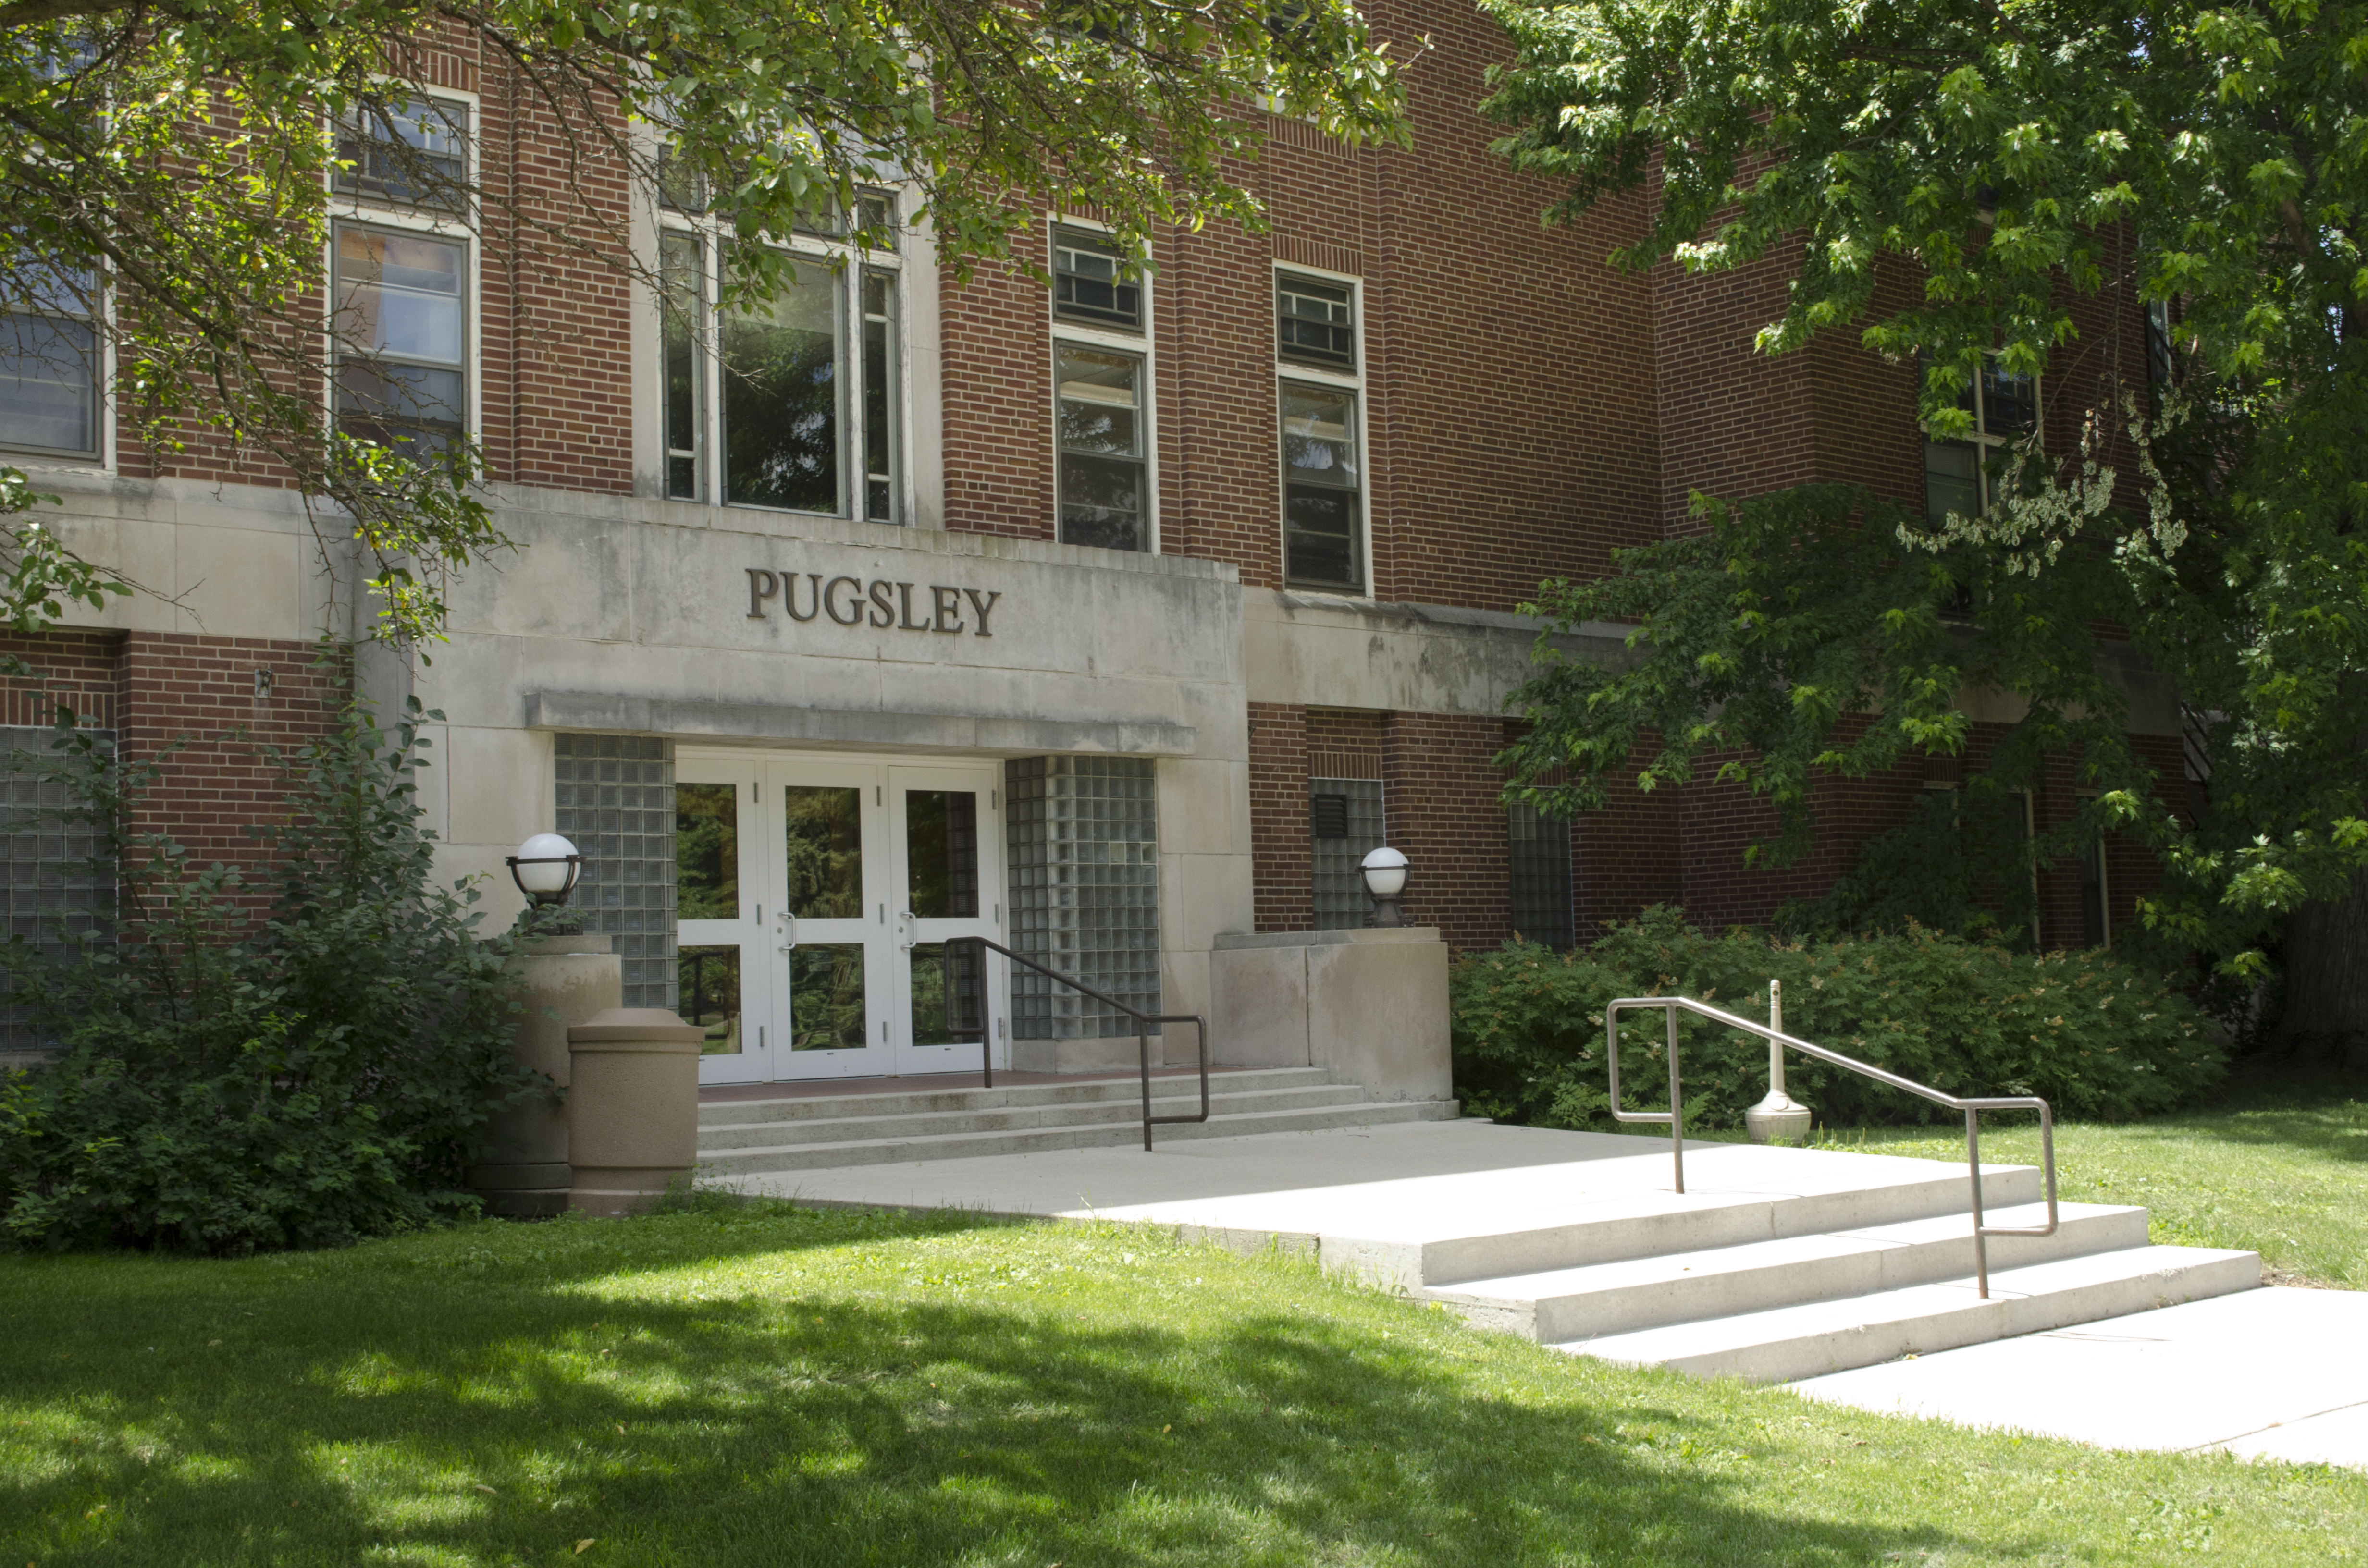 Pugsley Center